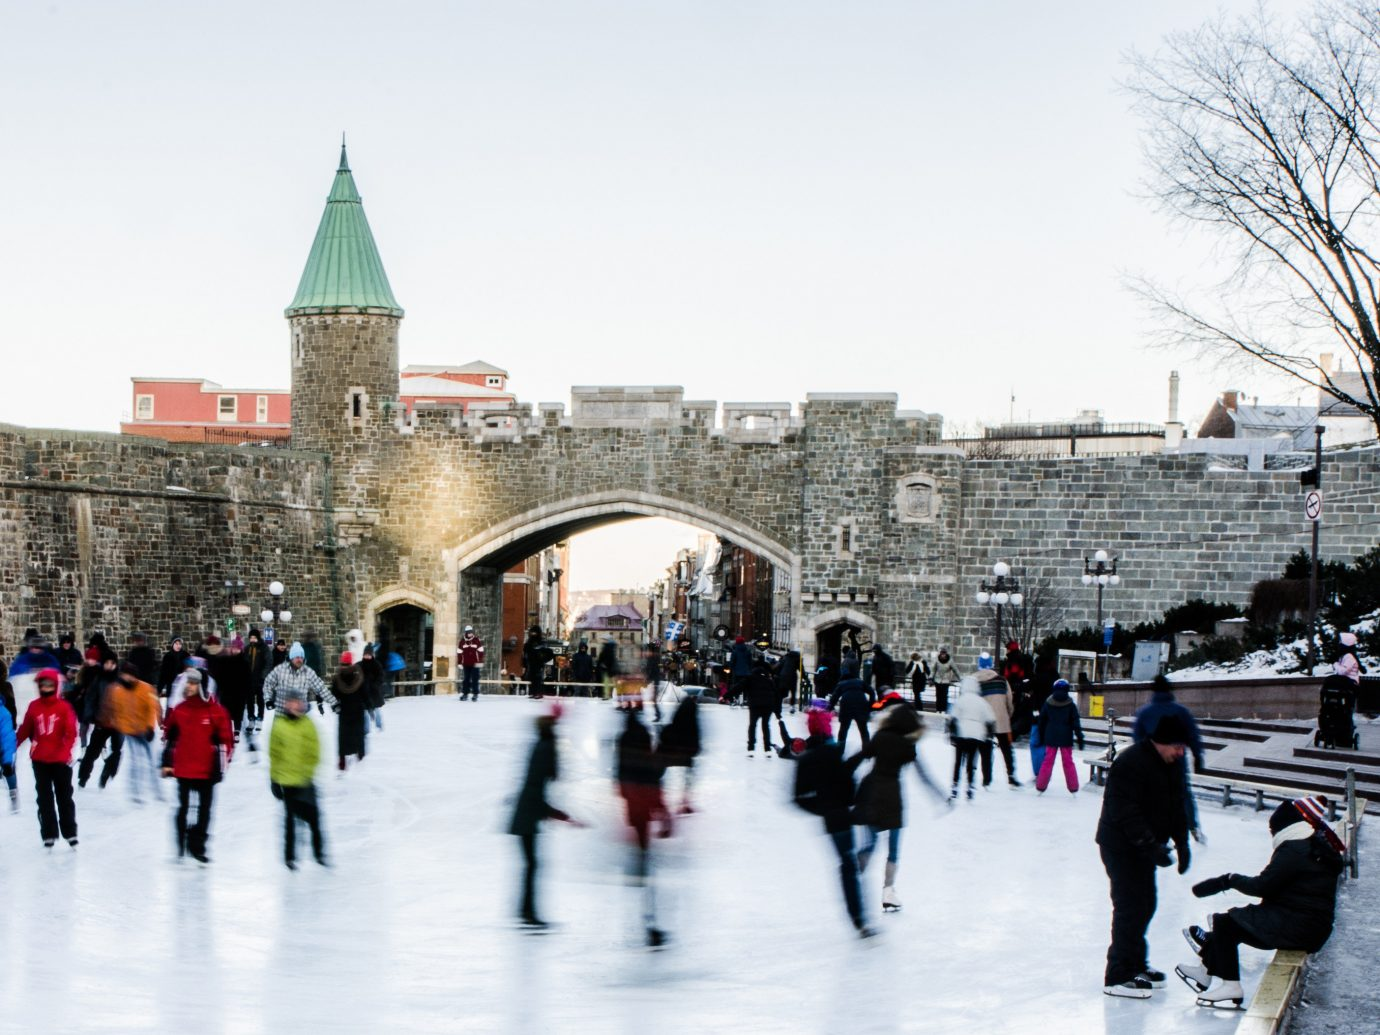 Boutique Hotels Canada Montreal Romance Toronto Trip Ideas rink outdoor building skiing snow people Winter group urban area City tree ice freezing town square tourism tourist attraction recreation pedestrian ice rink fun plaza sky Ice Skating crowd line ski slope